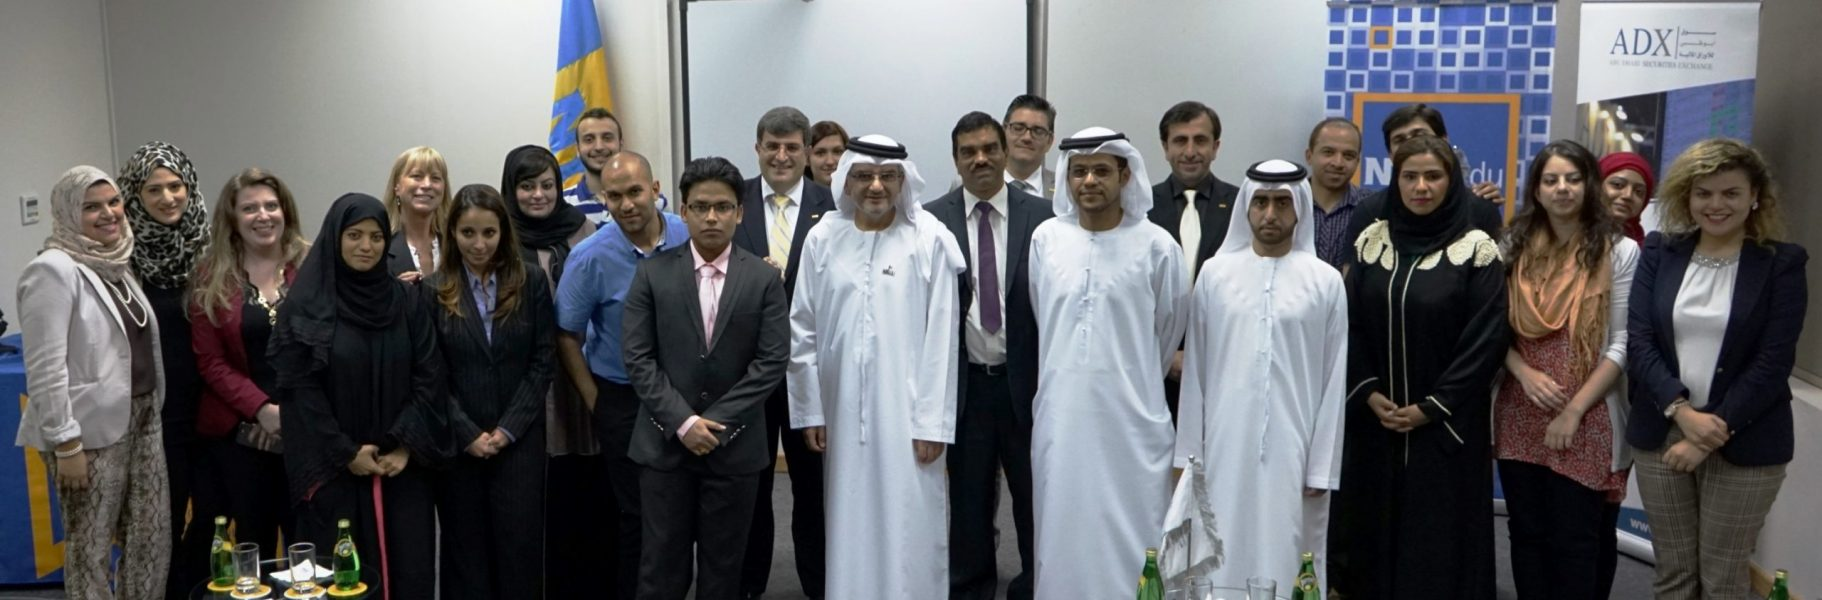 Abu-Dhabi-Securities-Exchange-Sponsors-NYIT-Corpor